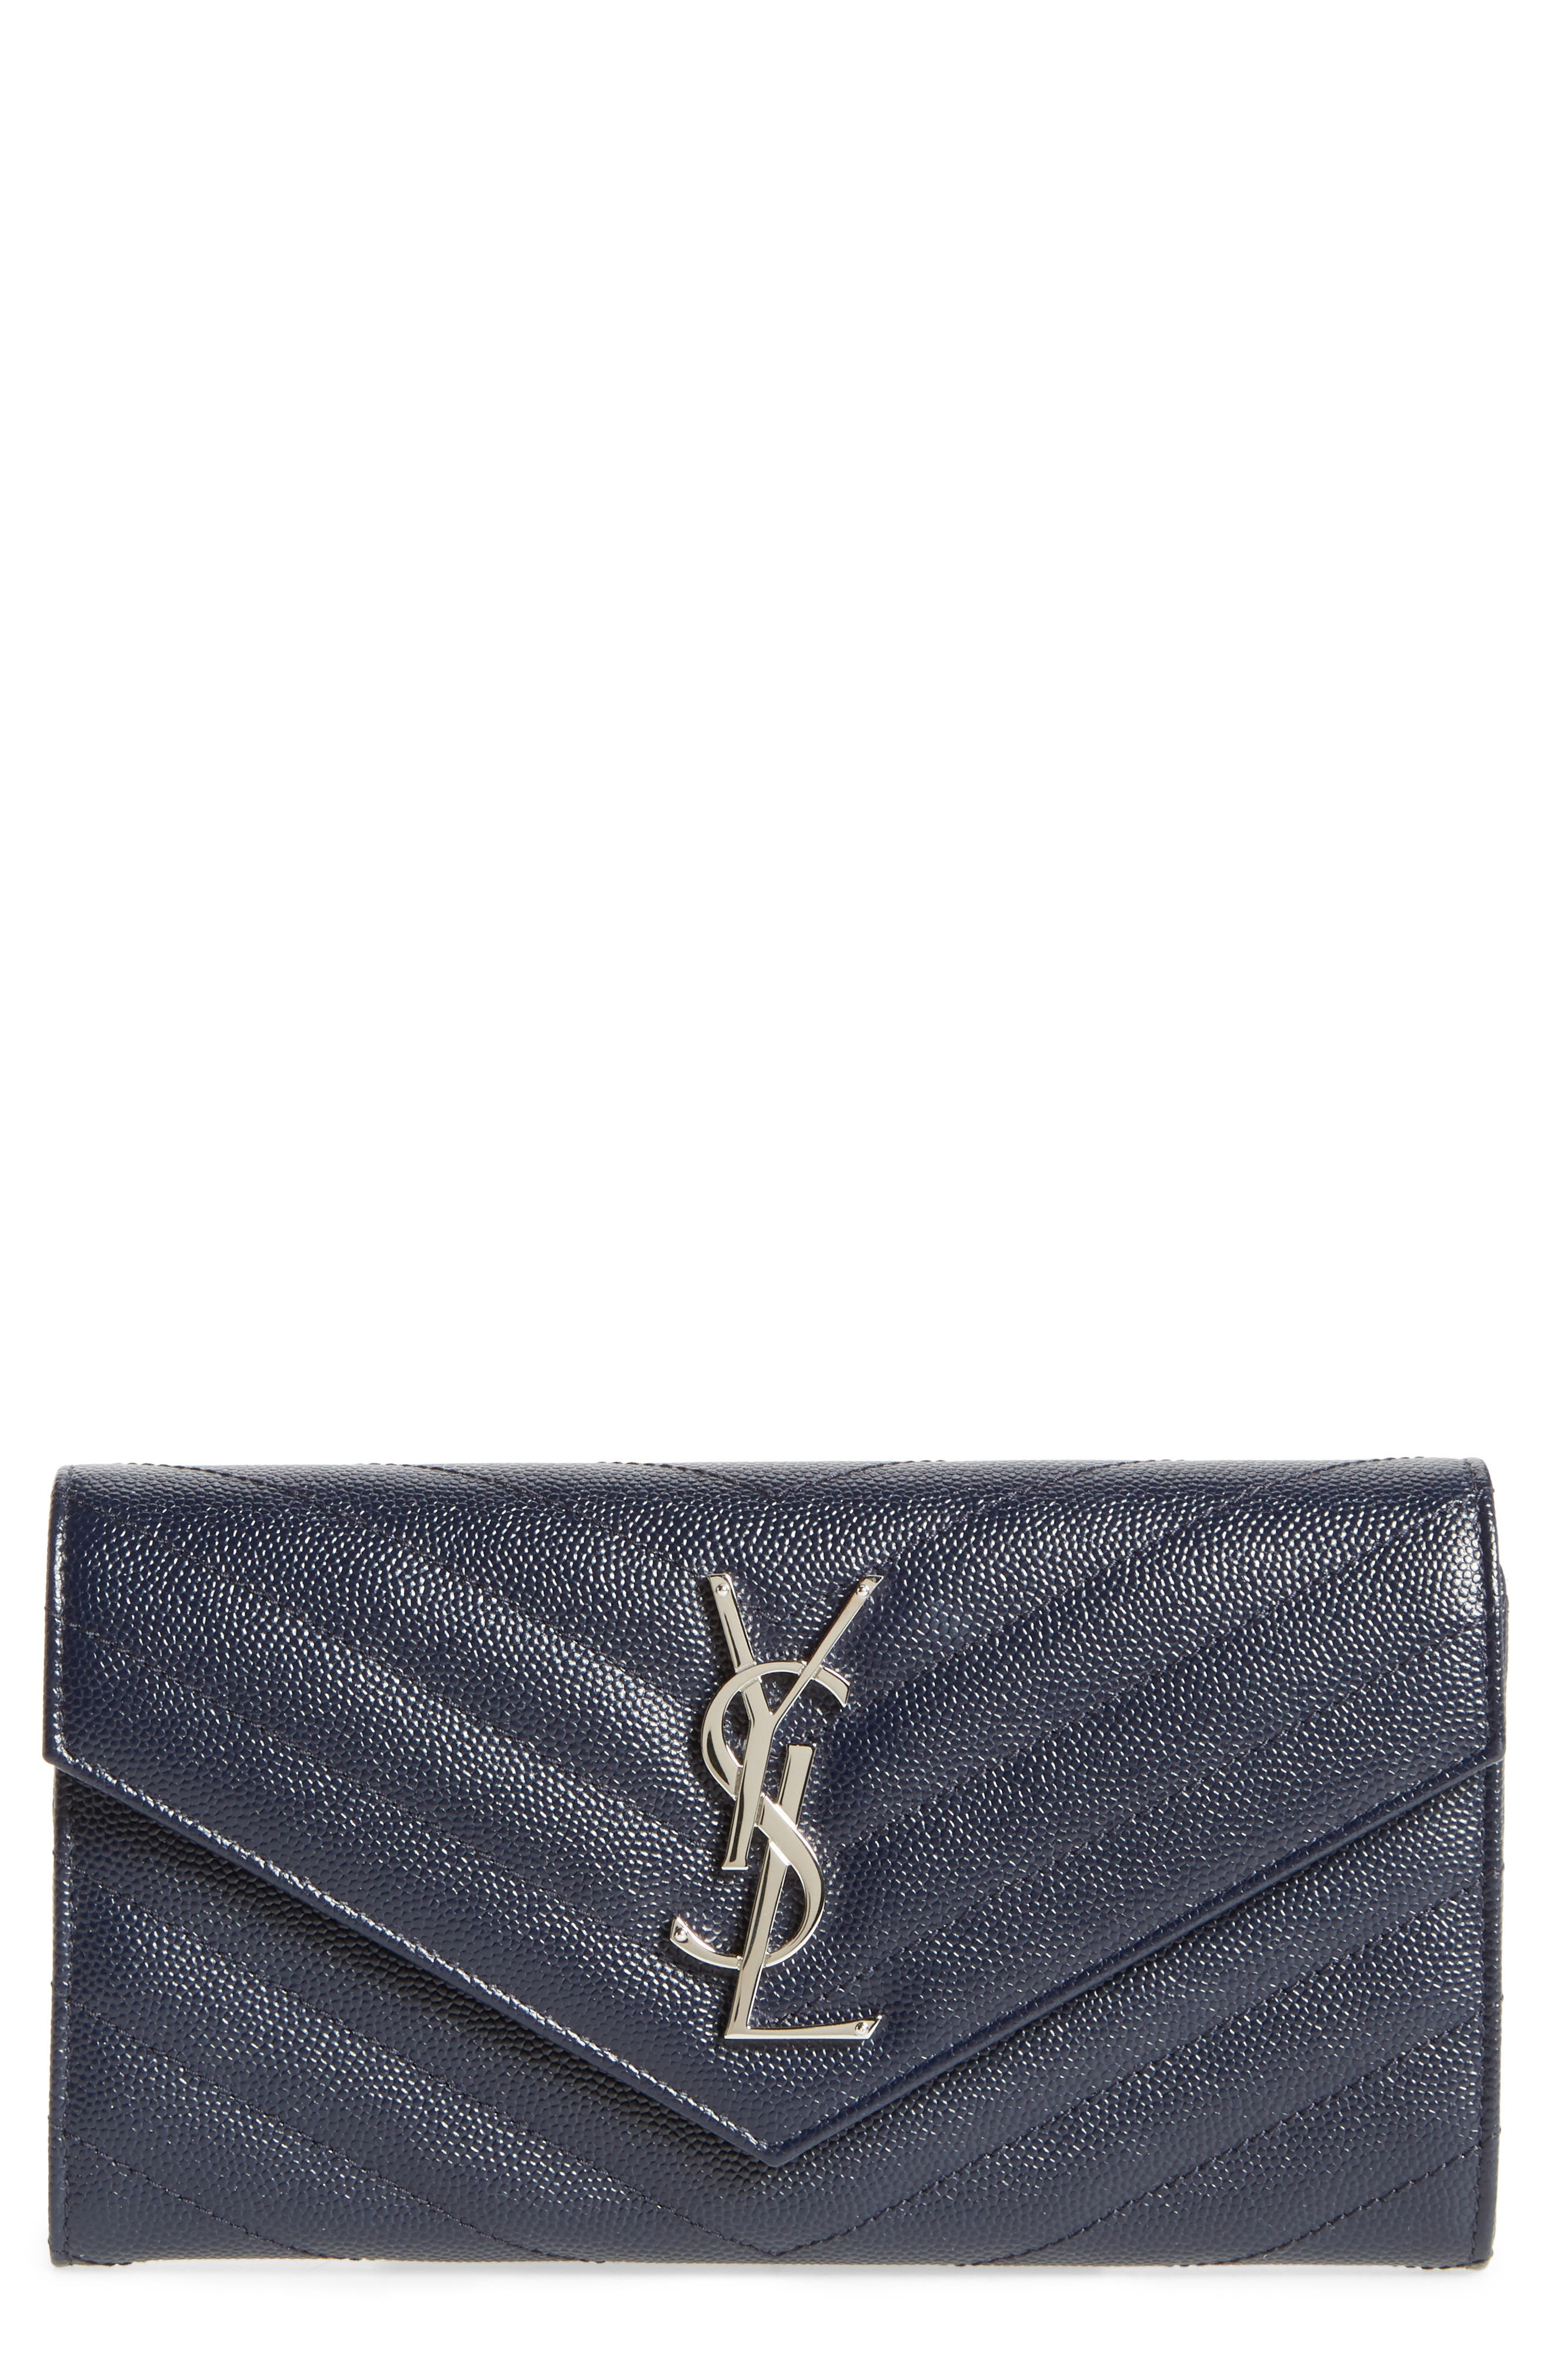 Saint Laurent M atelassé Leather Envelope Wallet